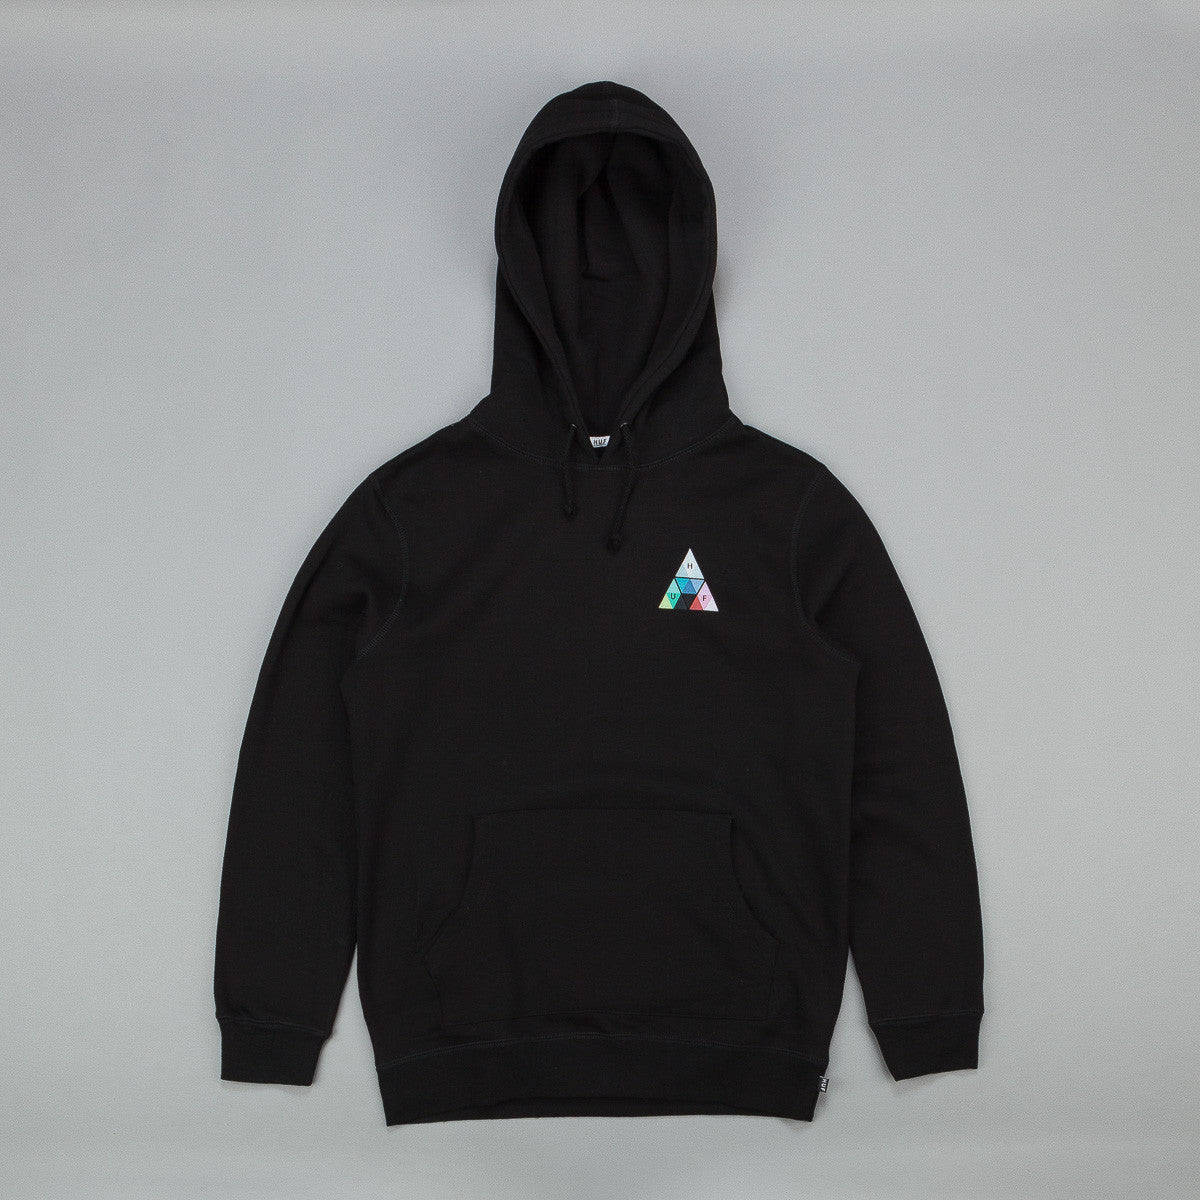 Huf Triangle Prism Hooded Sweatshirt